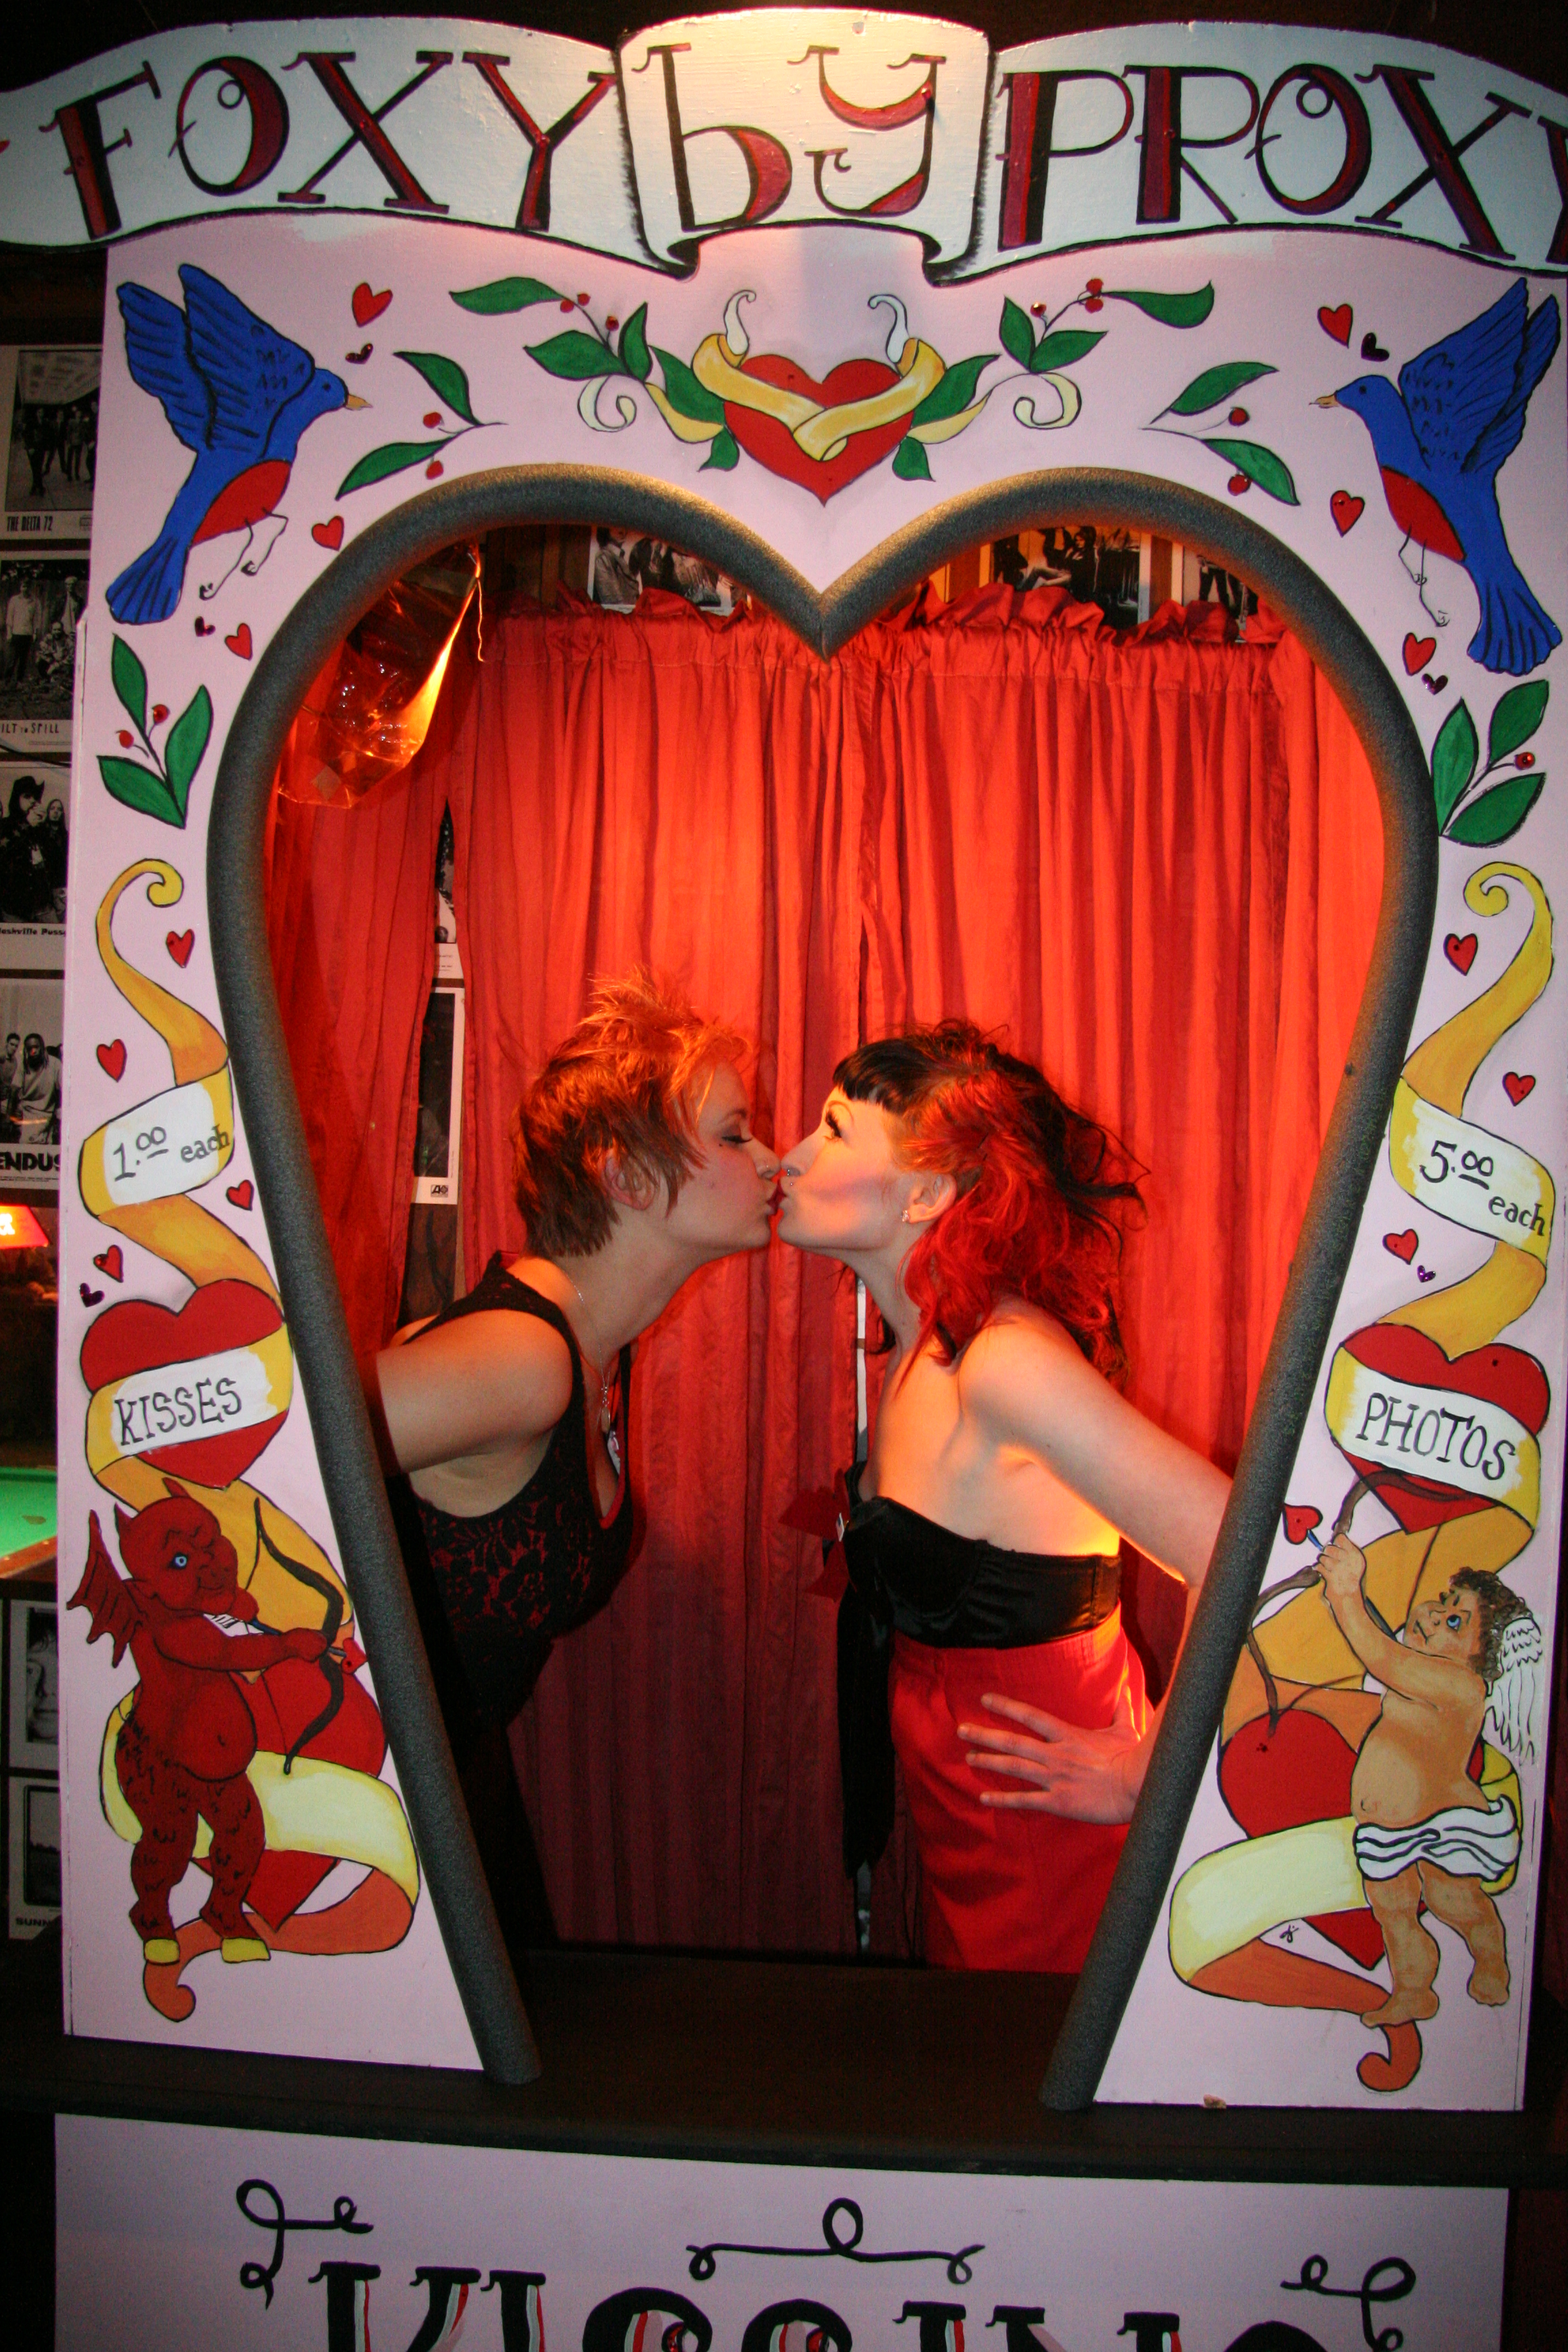 Valentine's Day offers fun activities for couples, singles ...